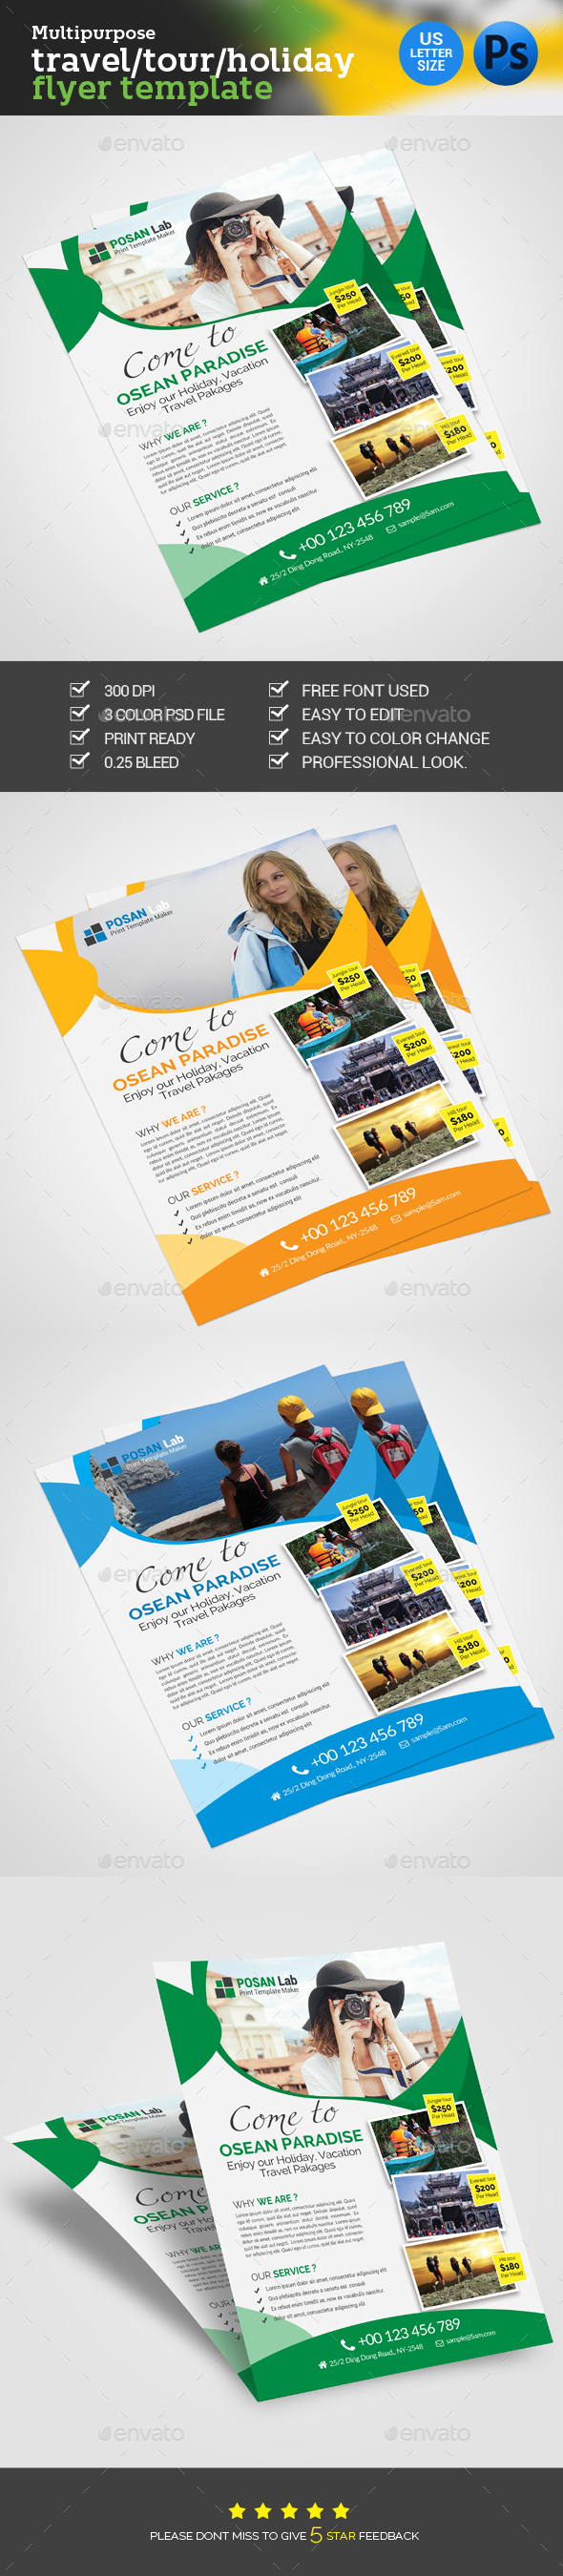 Holiday Travel Flyer - Commerce Flyers